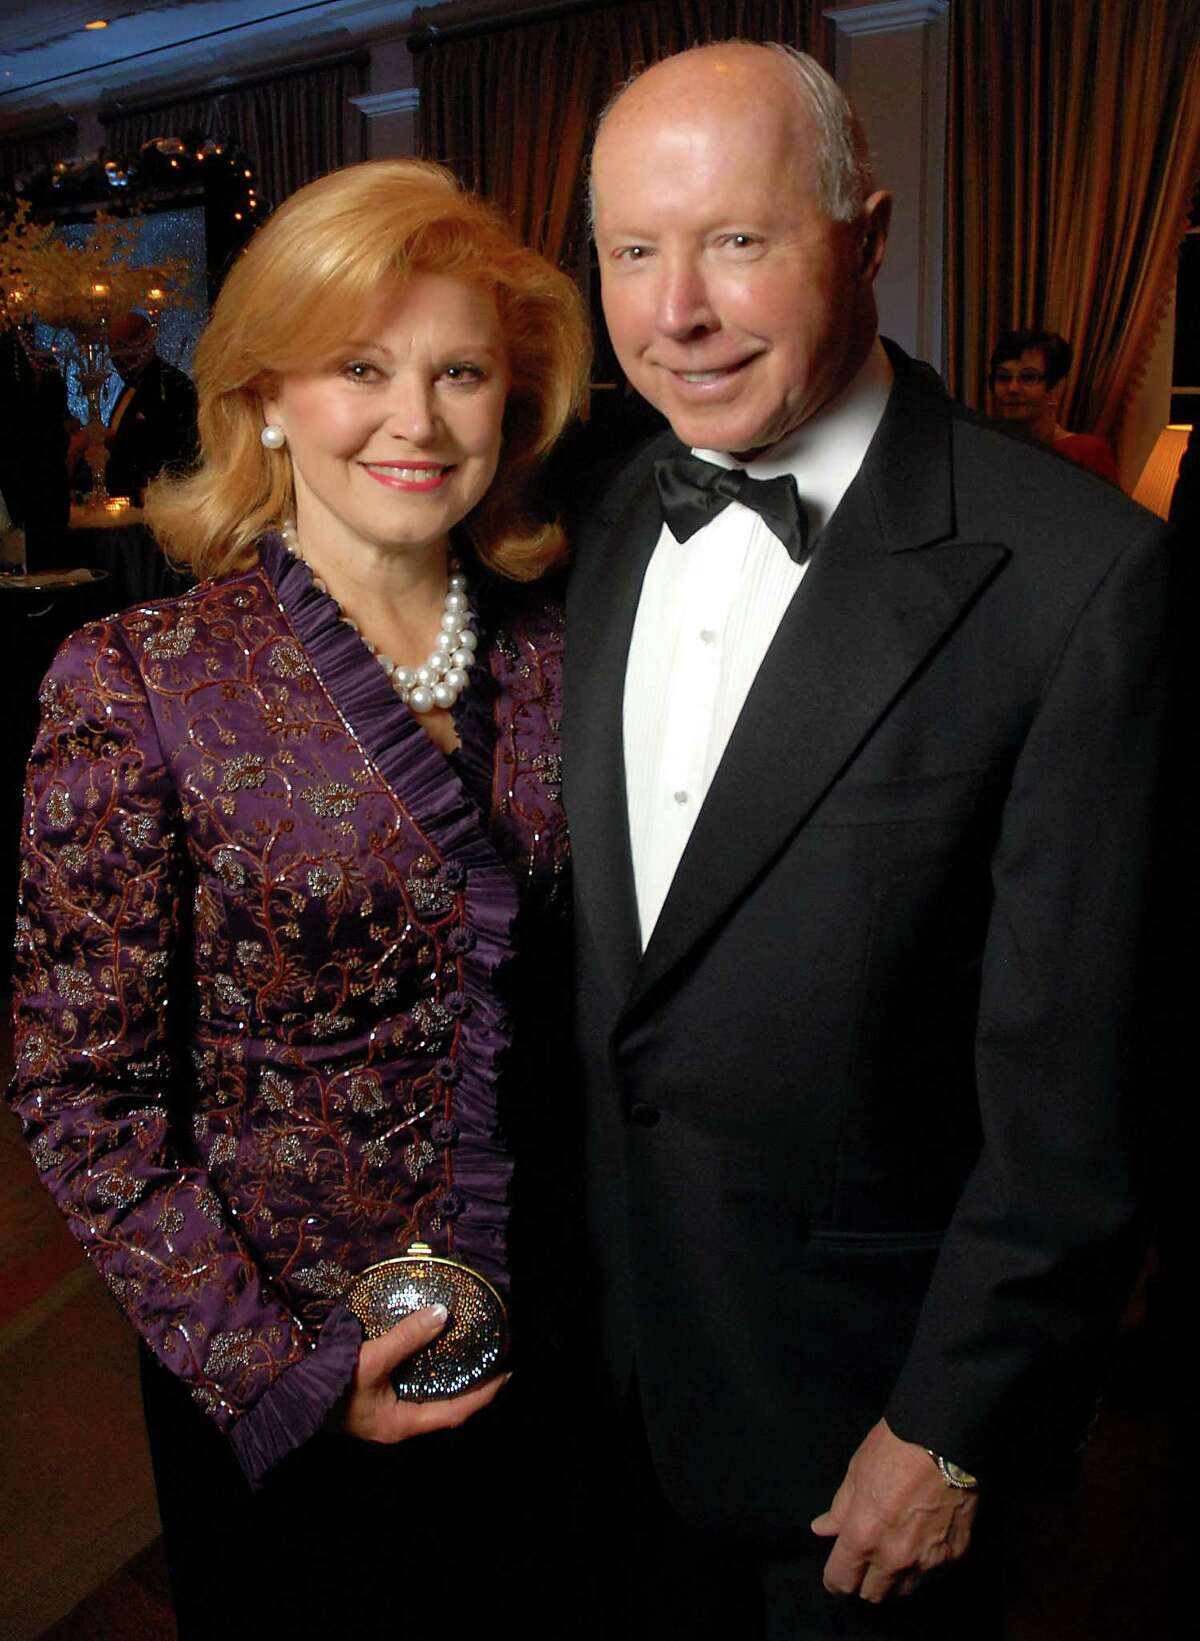 Jan and Dan Duncan at the Crystal Ball at the River Oaks Country Club Wednesday Dec. 10, 2008. The Duncans were major donors for the Neurological Research Institute at Texas Children's Hospital.